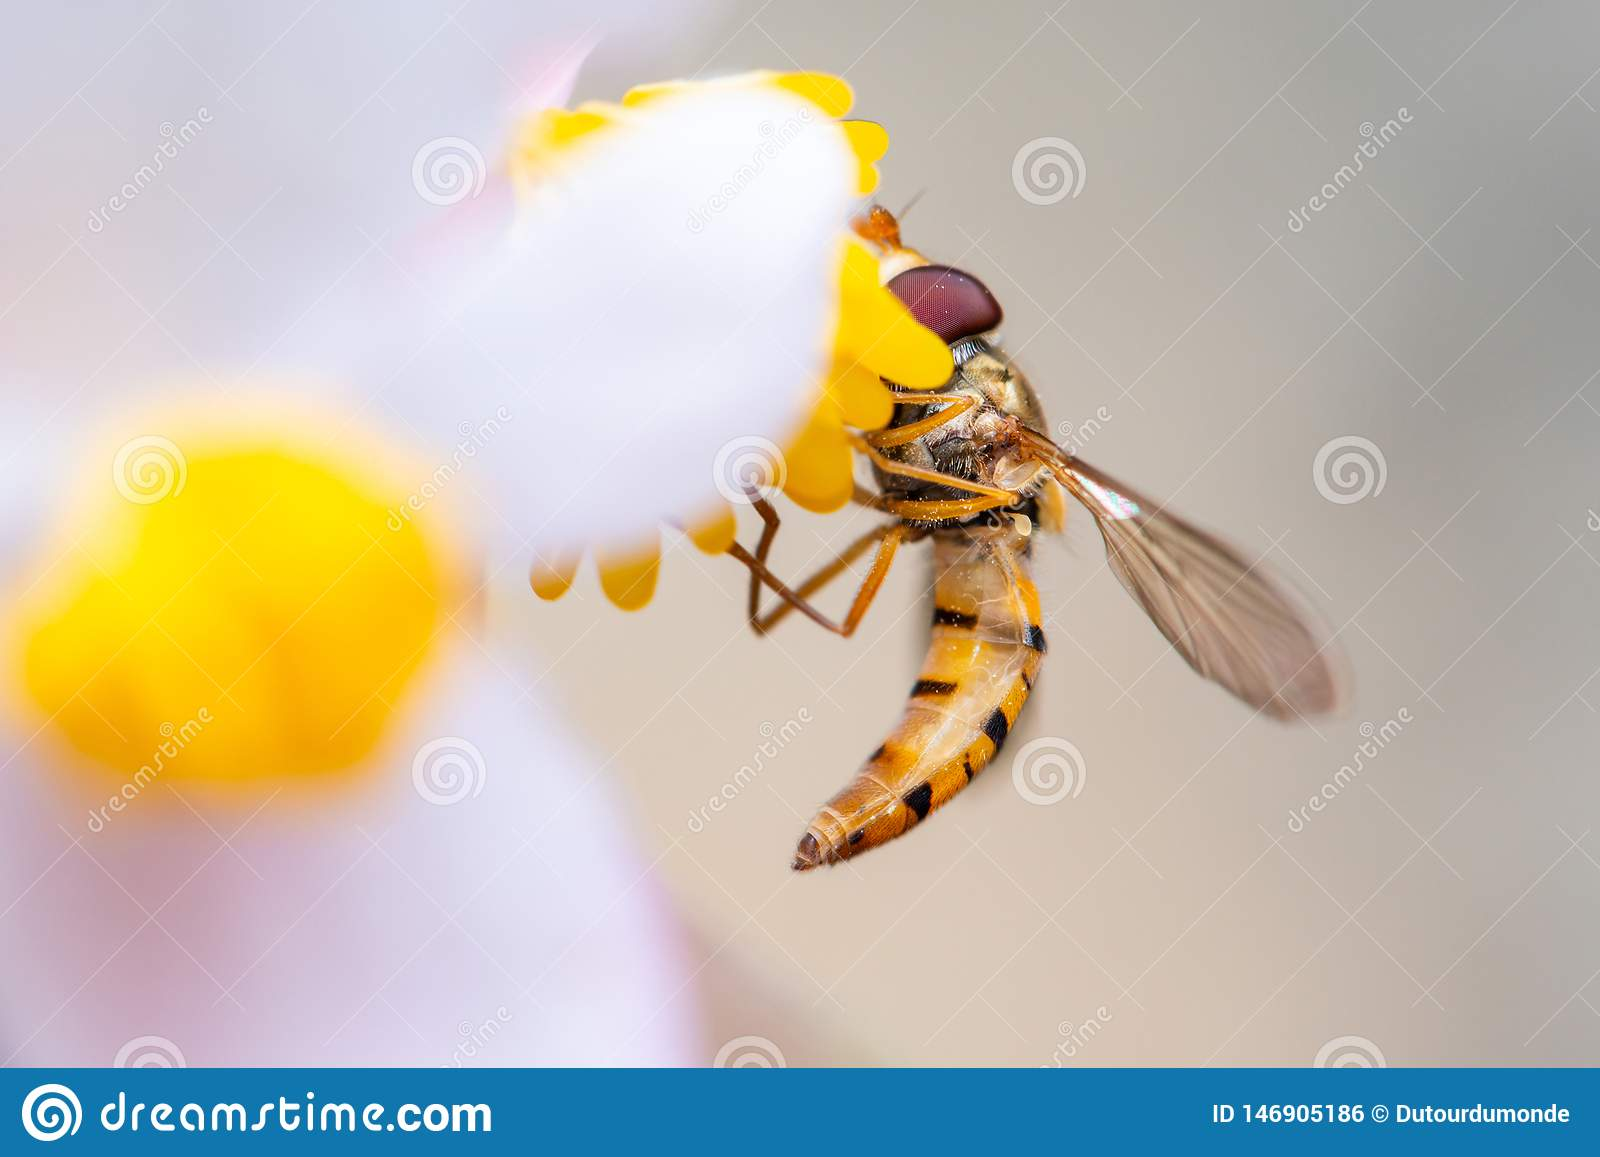 marmalade hoverfly or Episyrphus balteatus on a flower eating pollen